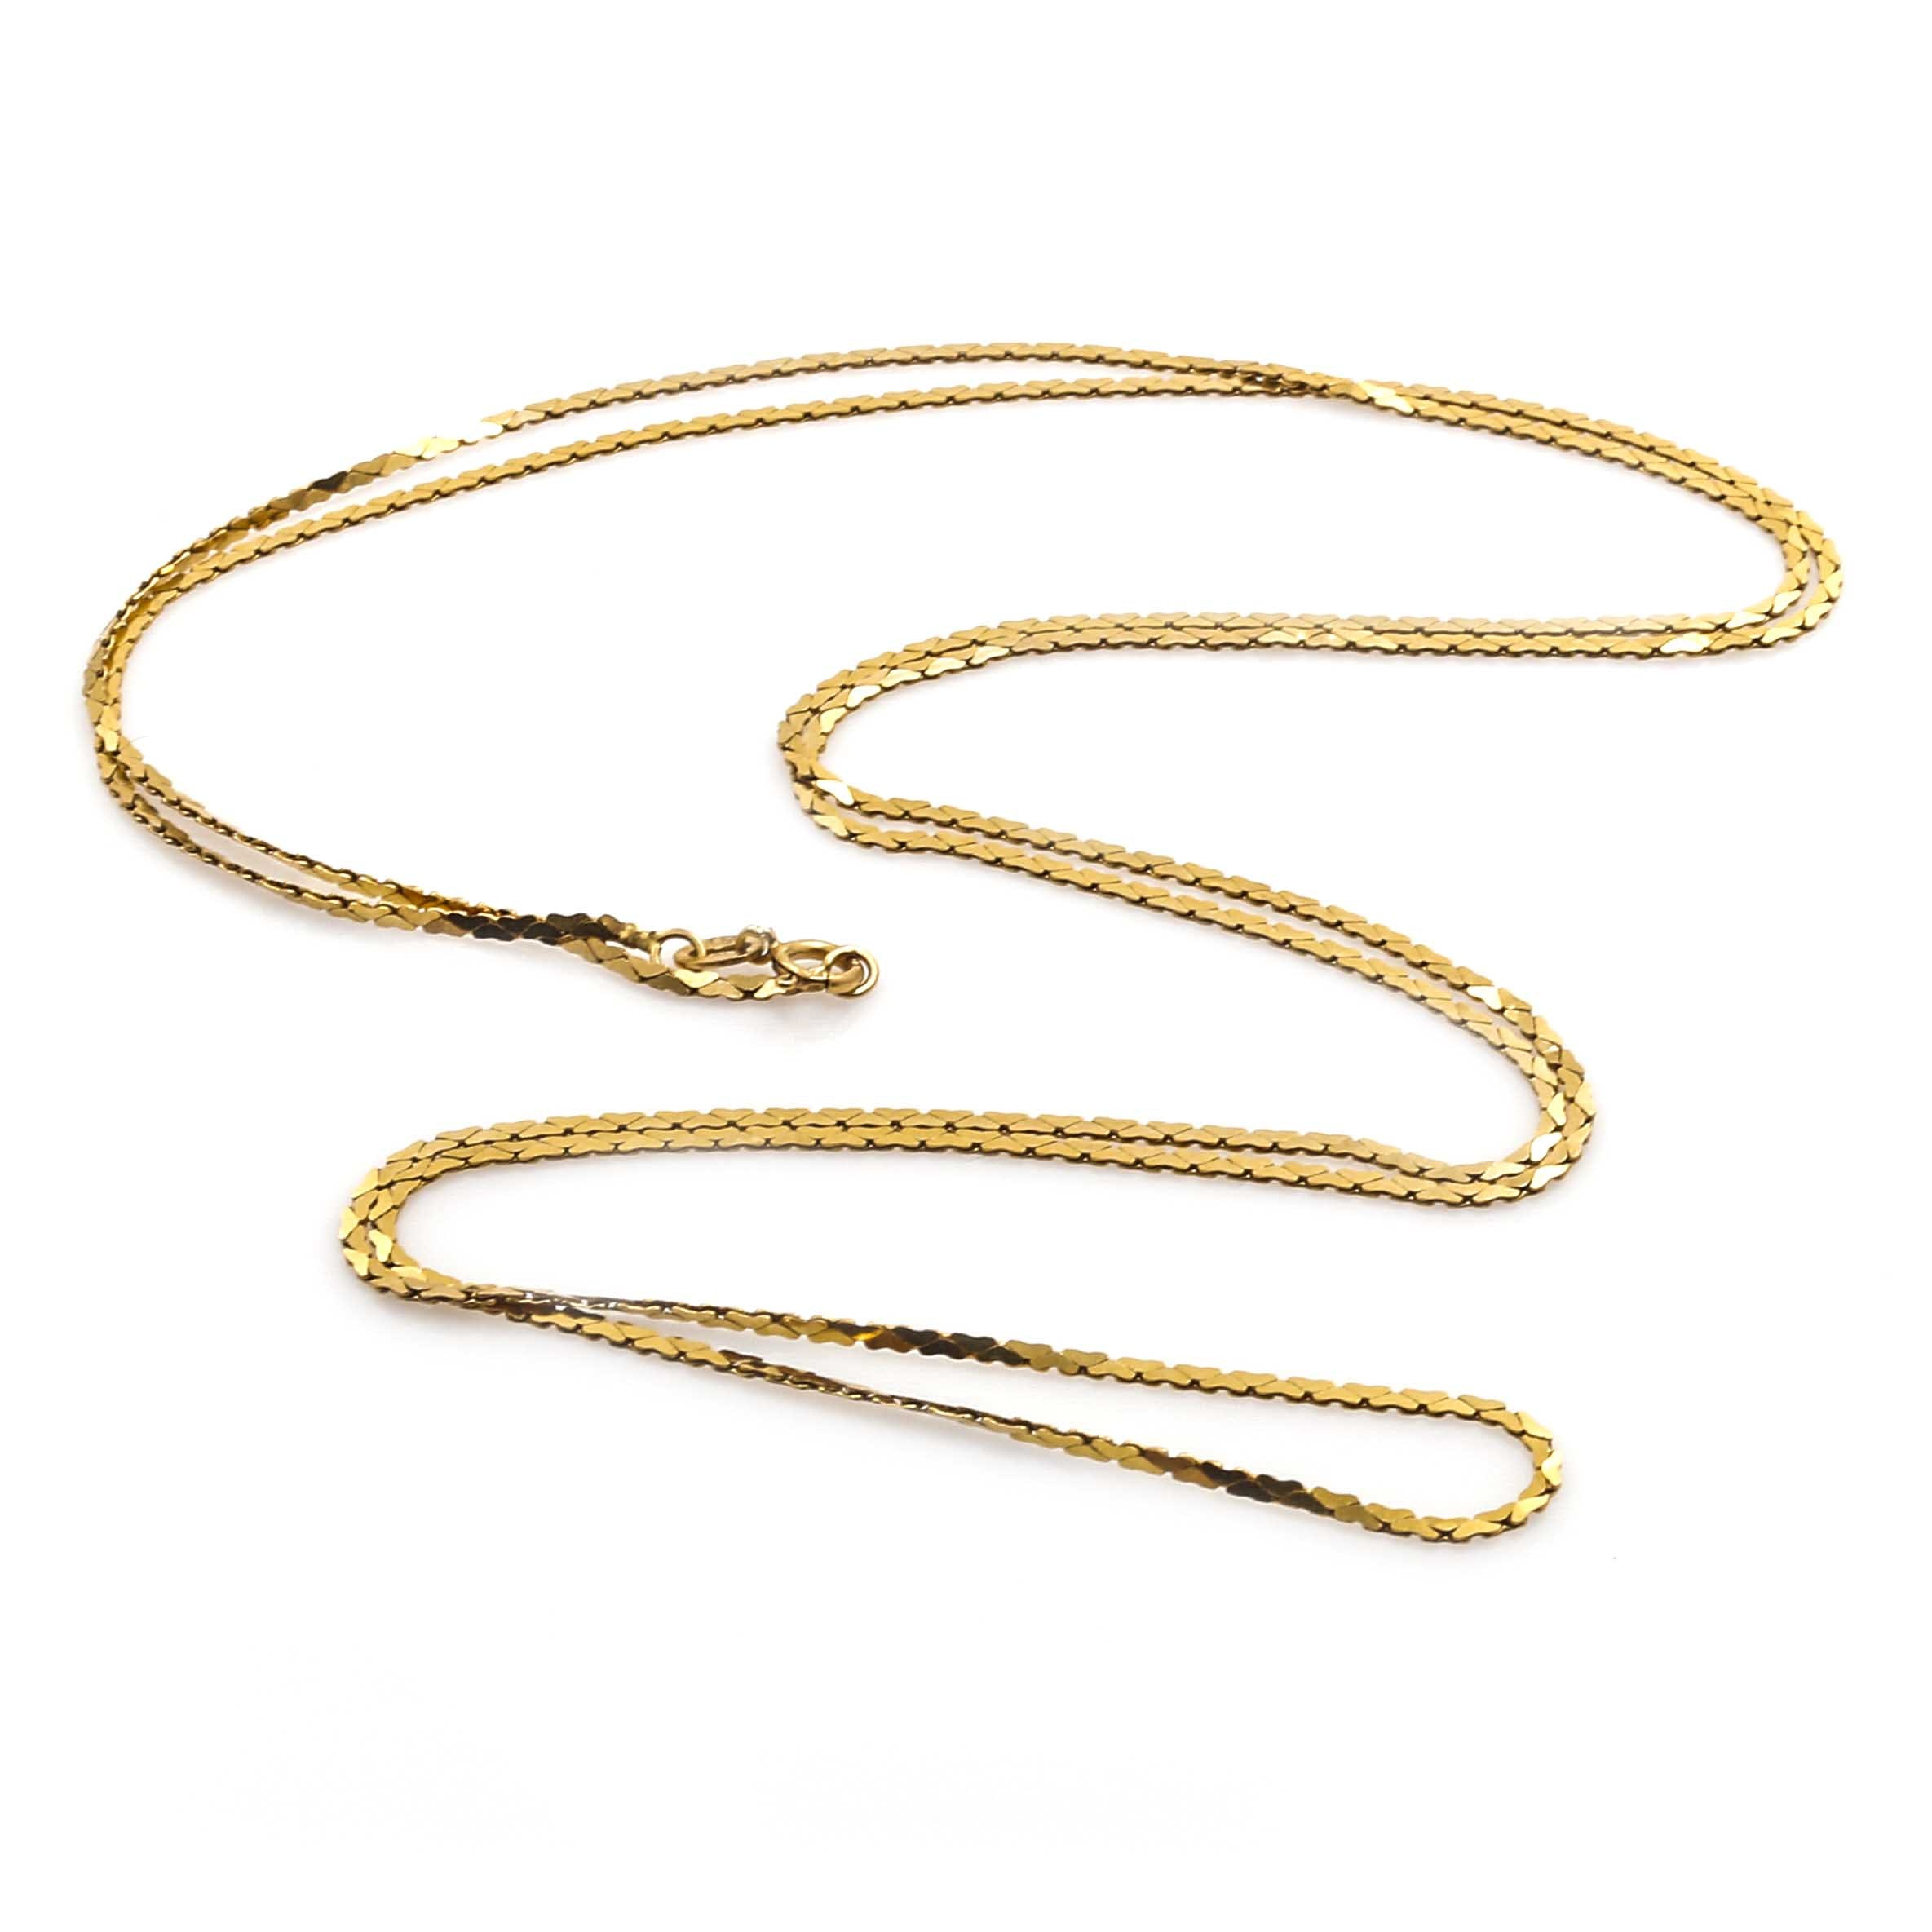 Italian 14K Yellow Gold Cobra Link Chain